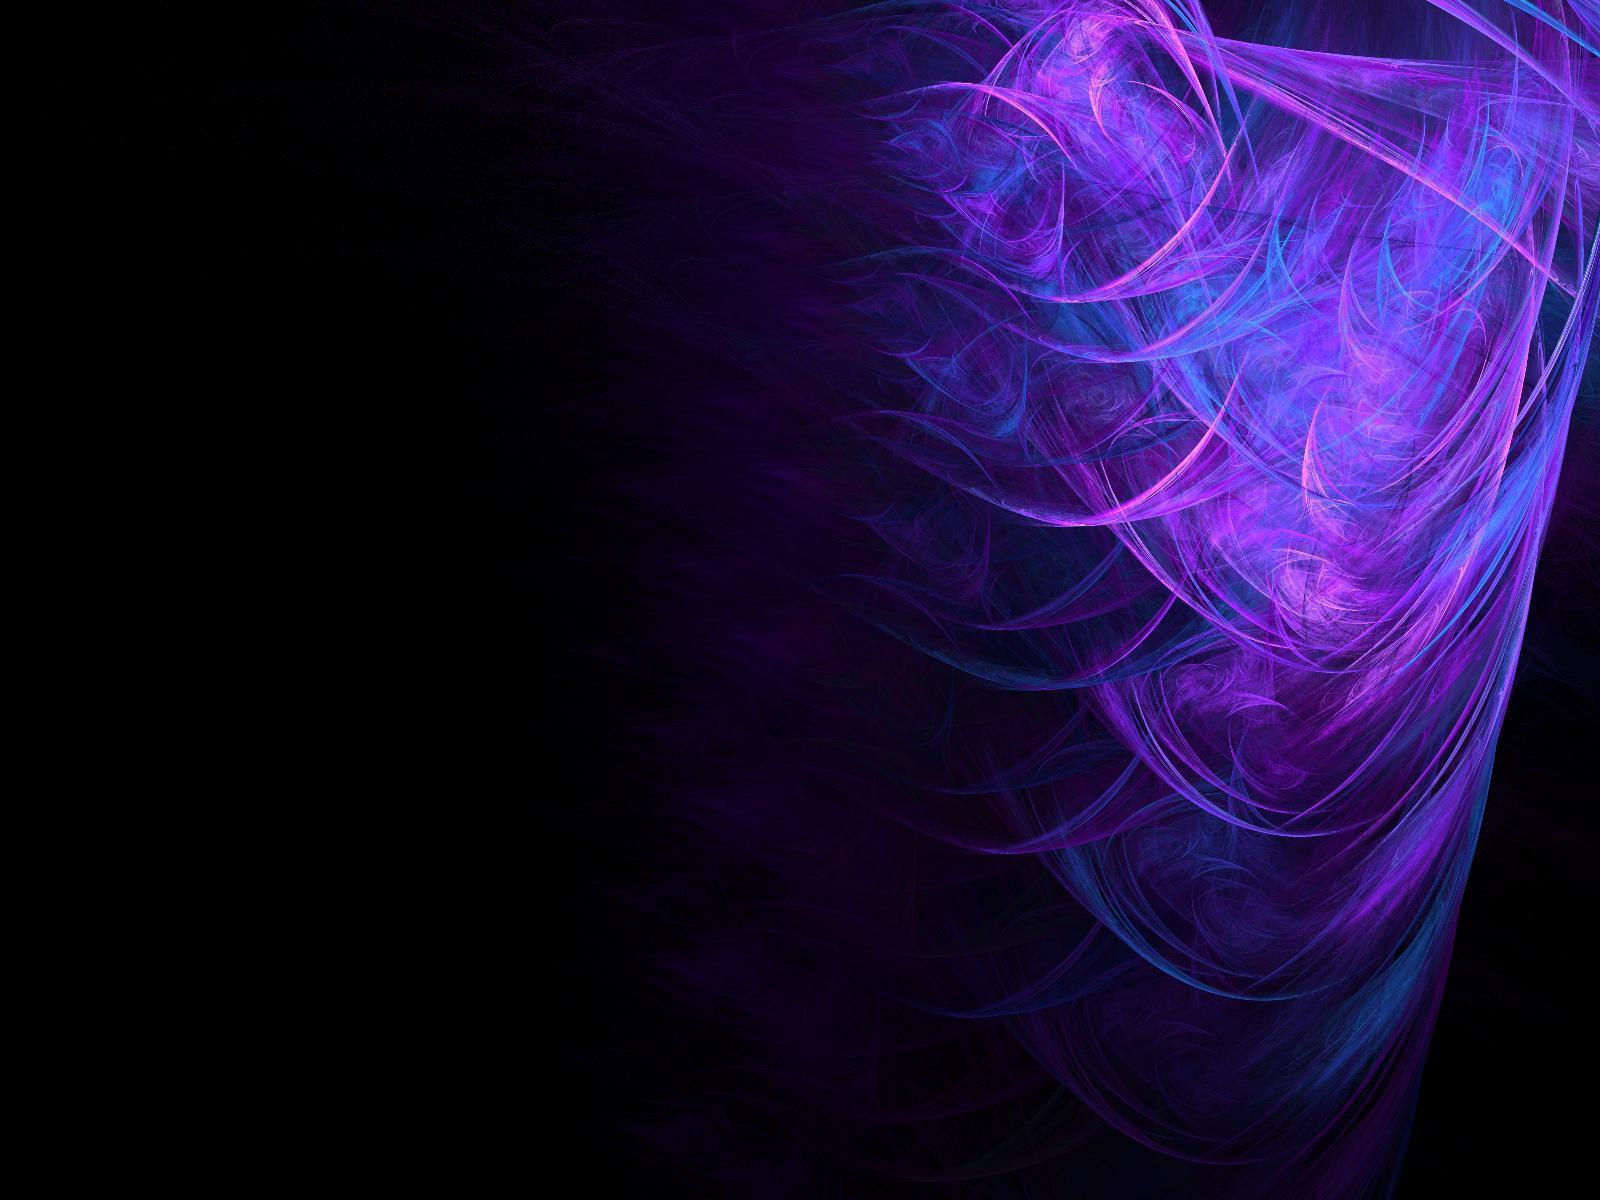 Black And Purple Backgrounds - Wallpaper Cave